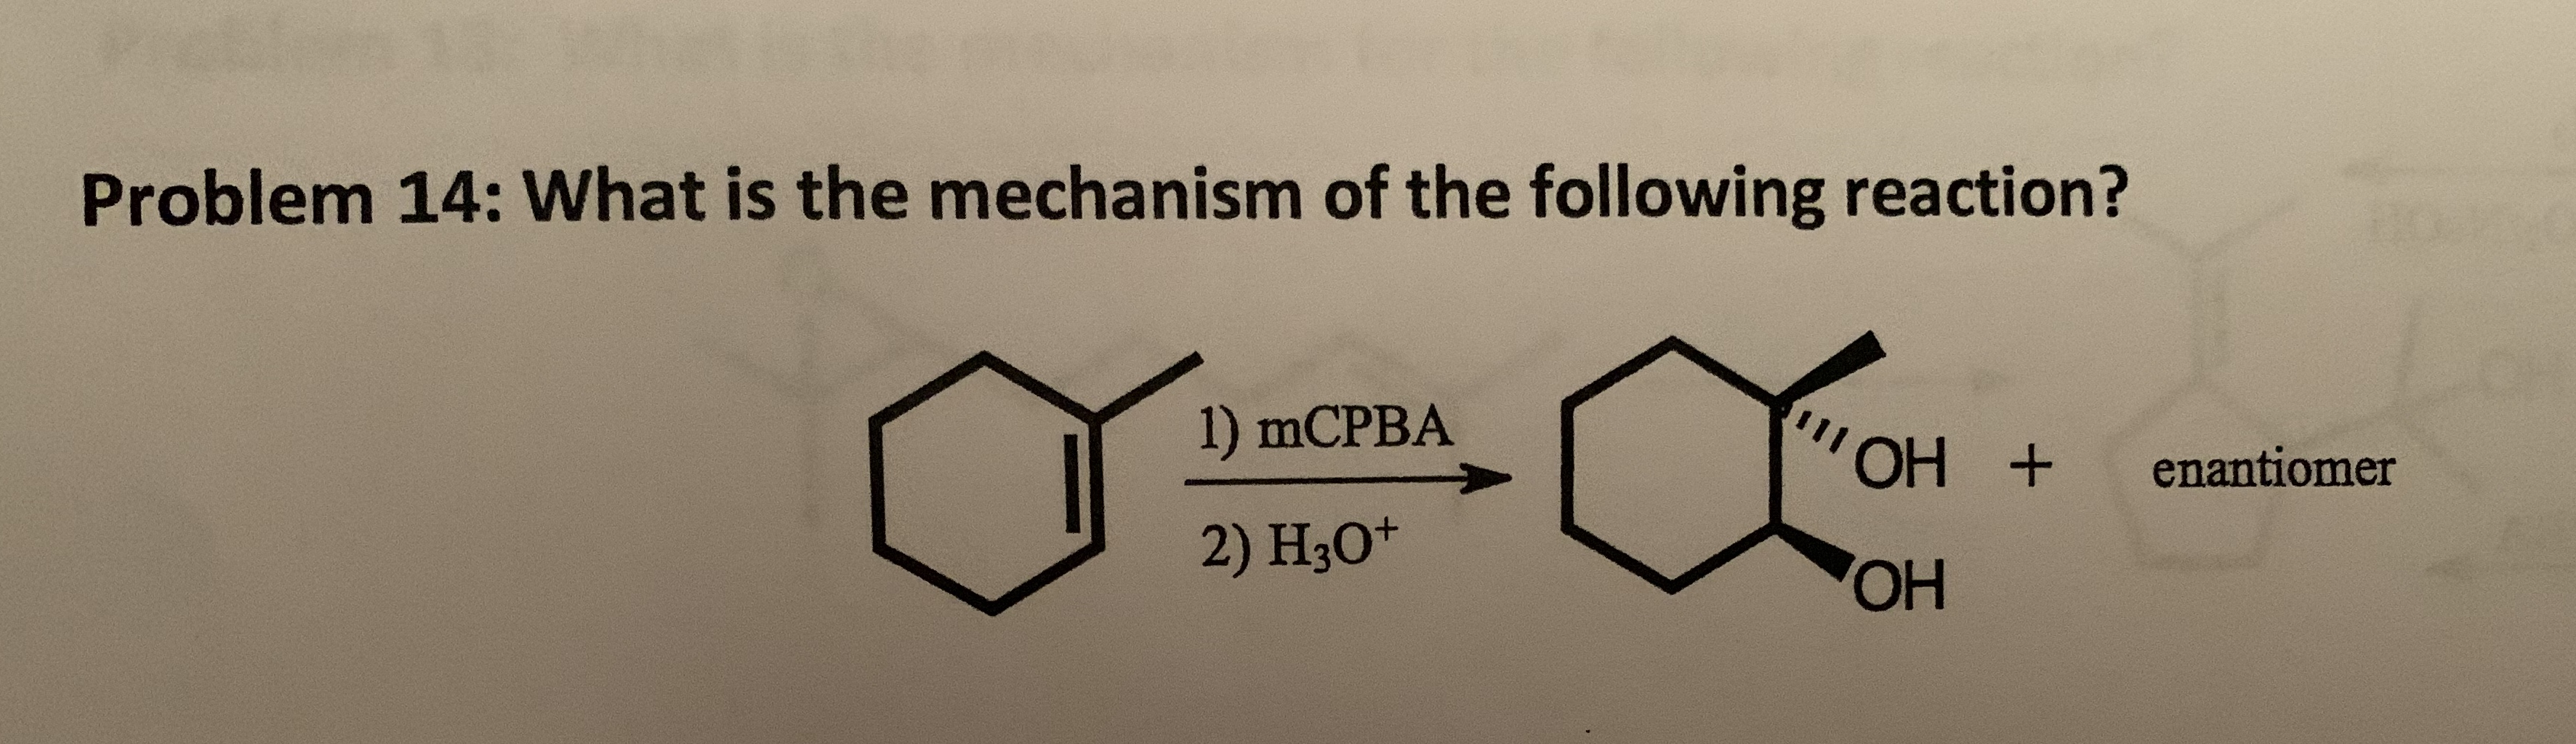 Problem 14: What is the mechanism of the following reaction? 1) MCPBA ОН + enantiomer 2) HзО* ОН